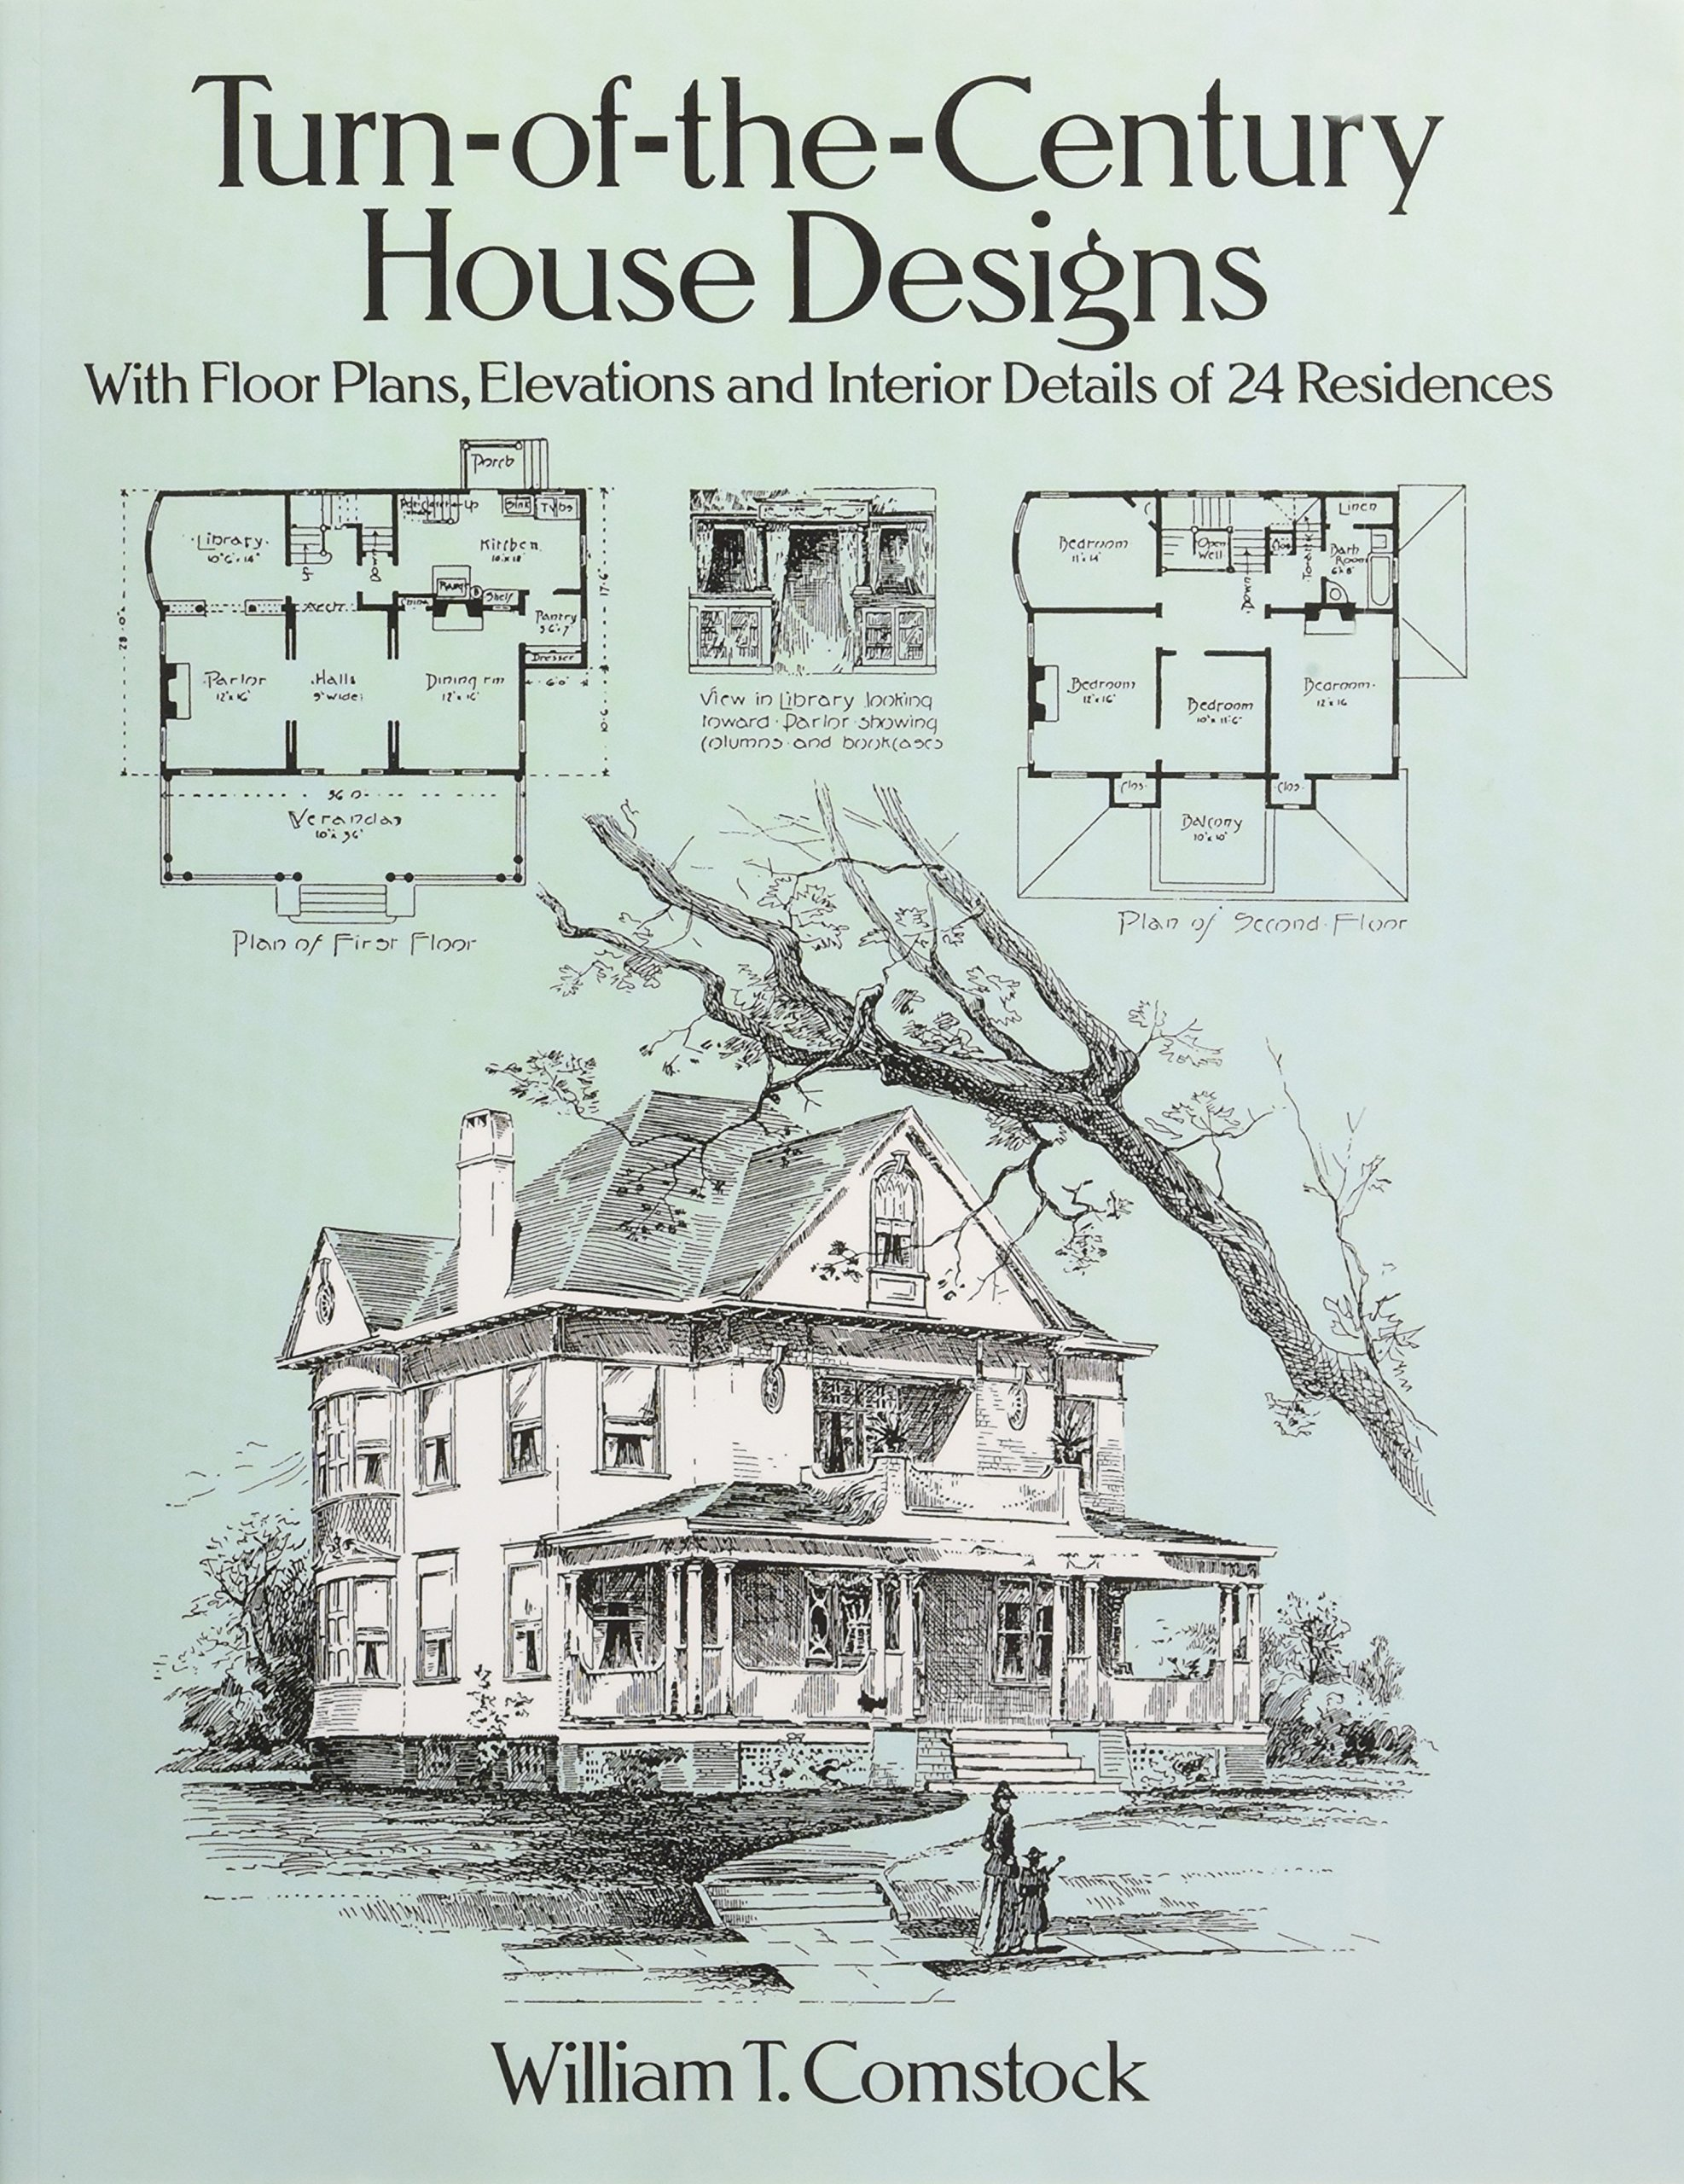 Turn-of-the-Century House Designs: With Floor Plans ... on kame house sketch, victorian house sketch, split level house sketch, colonial house sketch, cottage house sketch, bungalow house sketch, contemporary house sketch, cape cod house sketch, pool house sketch, tudor house sketch,